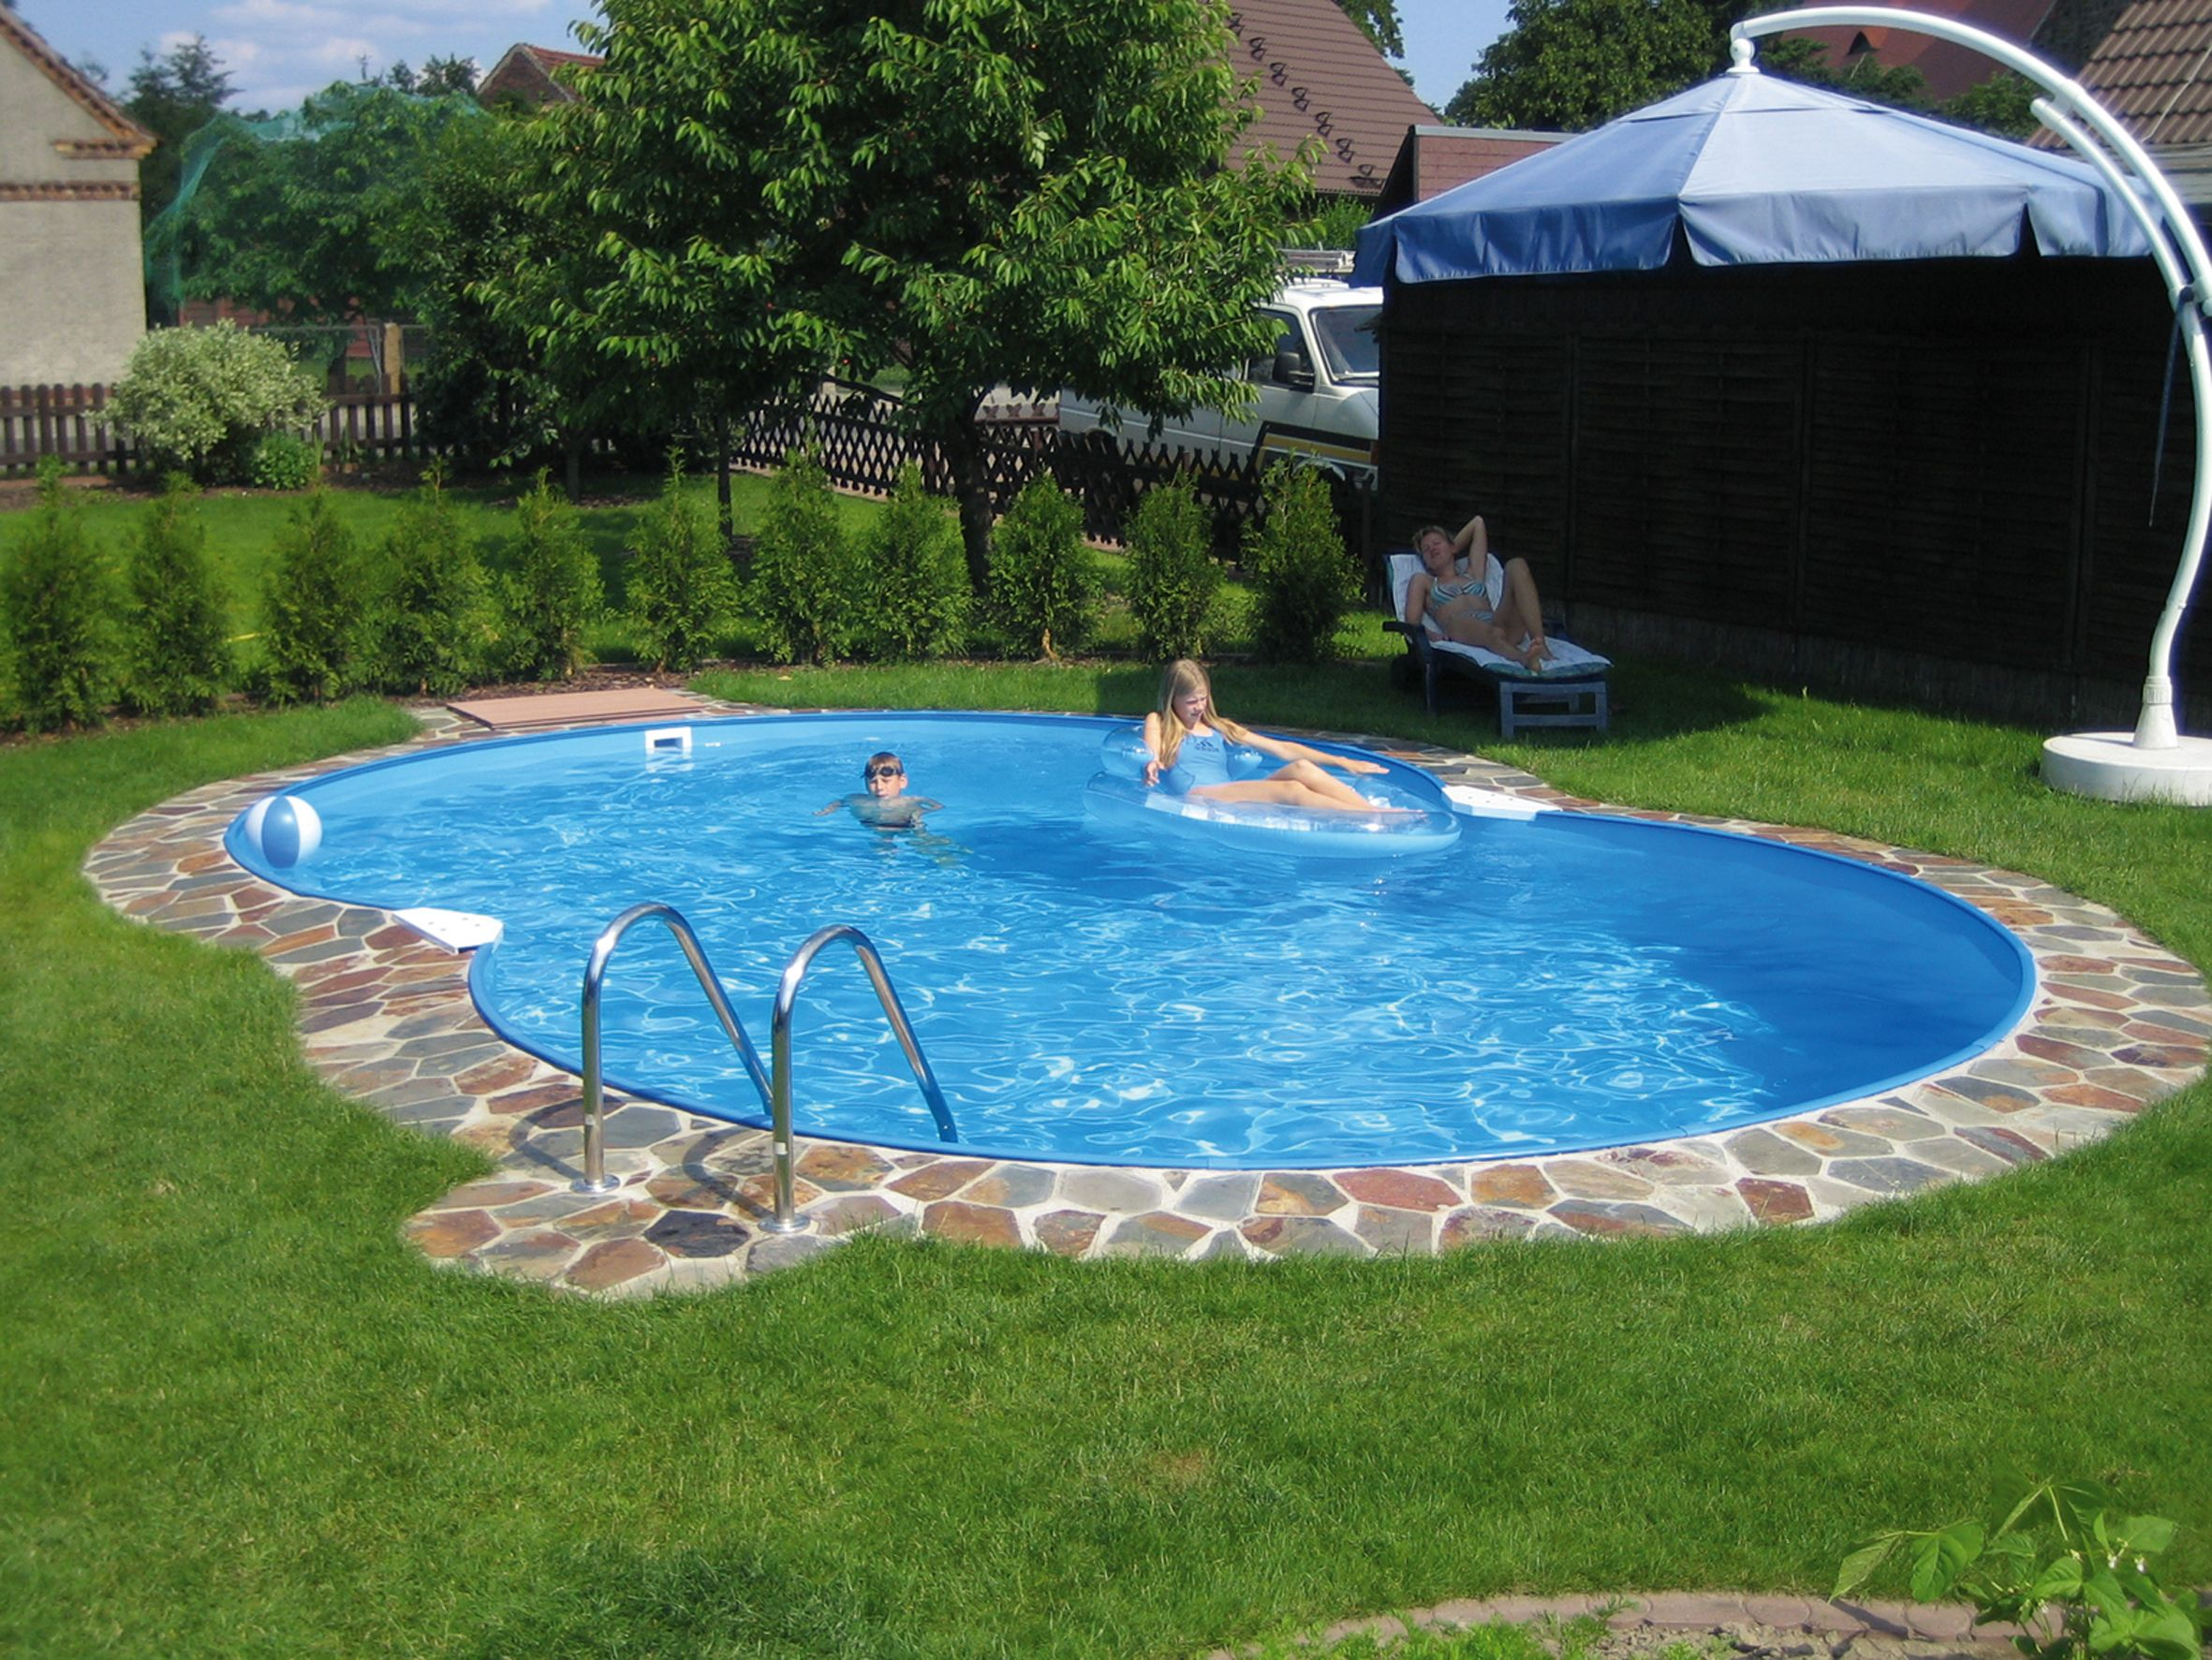 backyard landscaping ideas swimming pool design read more at wwwhomestheticsnet - Design A Swimming Pool